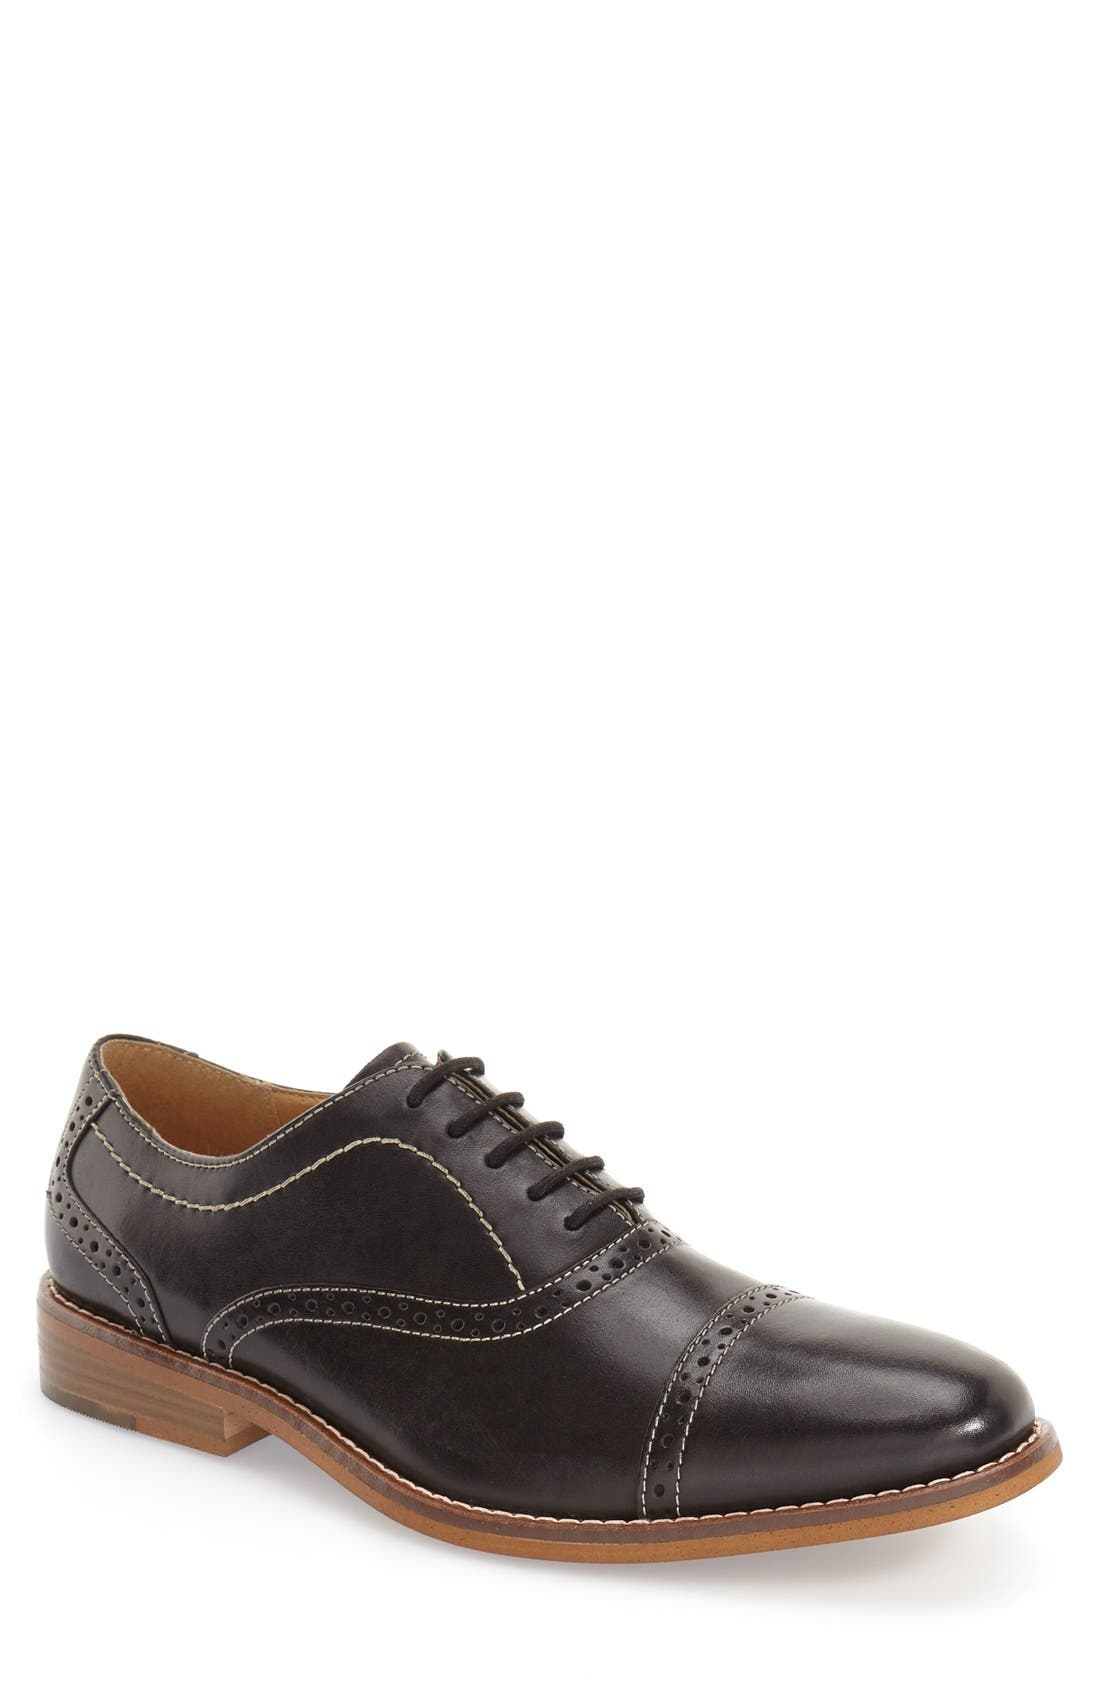 Main Image - G.H. Bass & Co. 'Carnell' Cap Toe Oxford (Men)